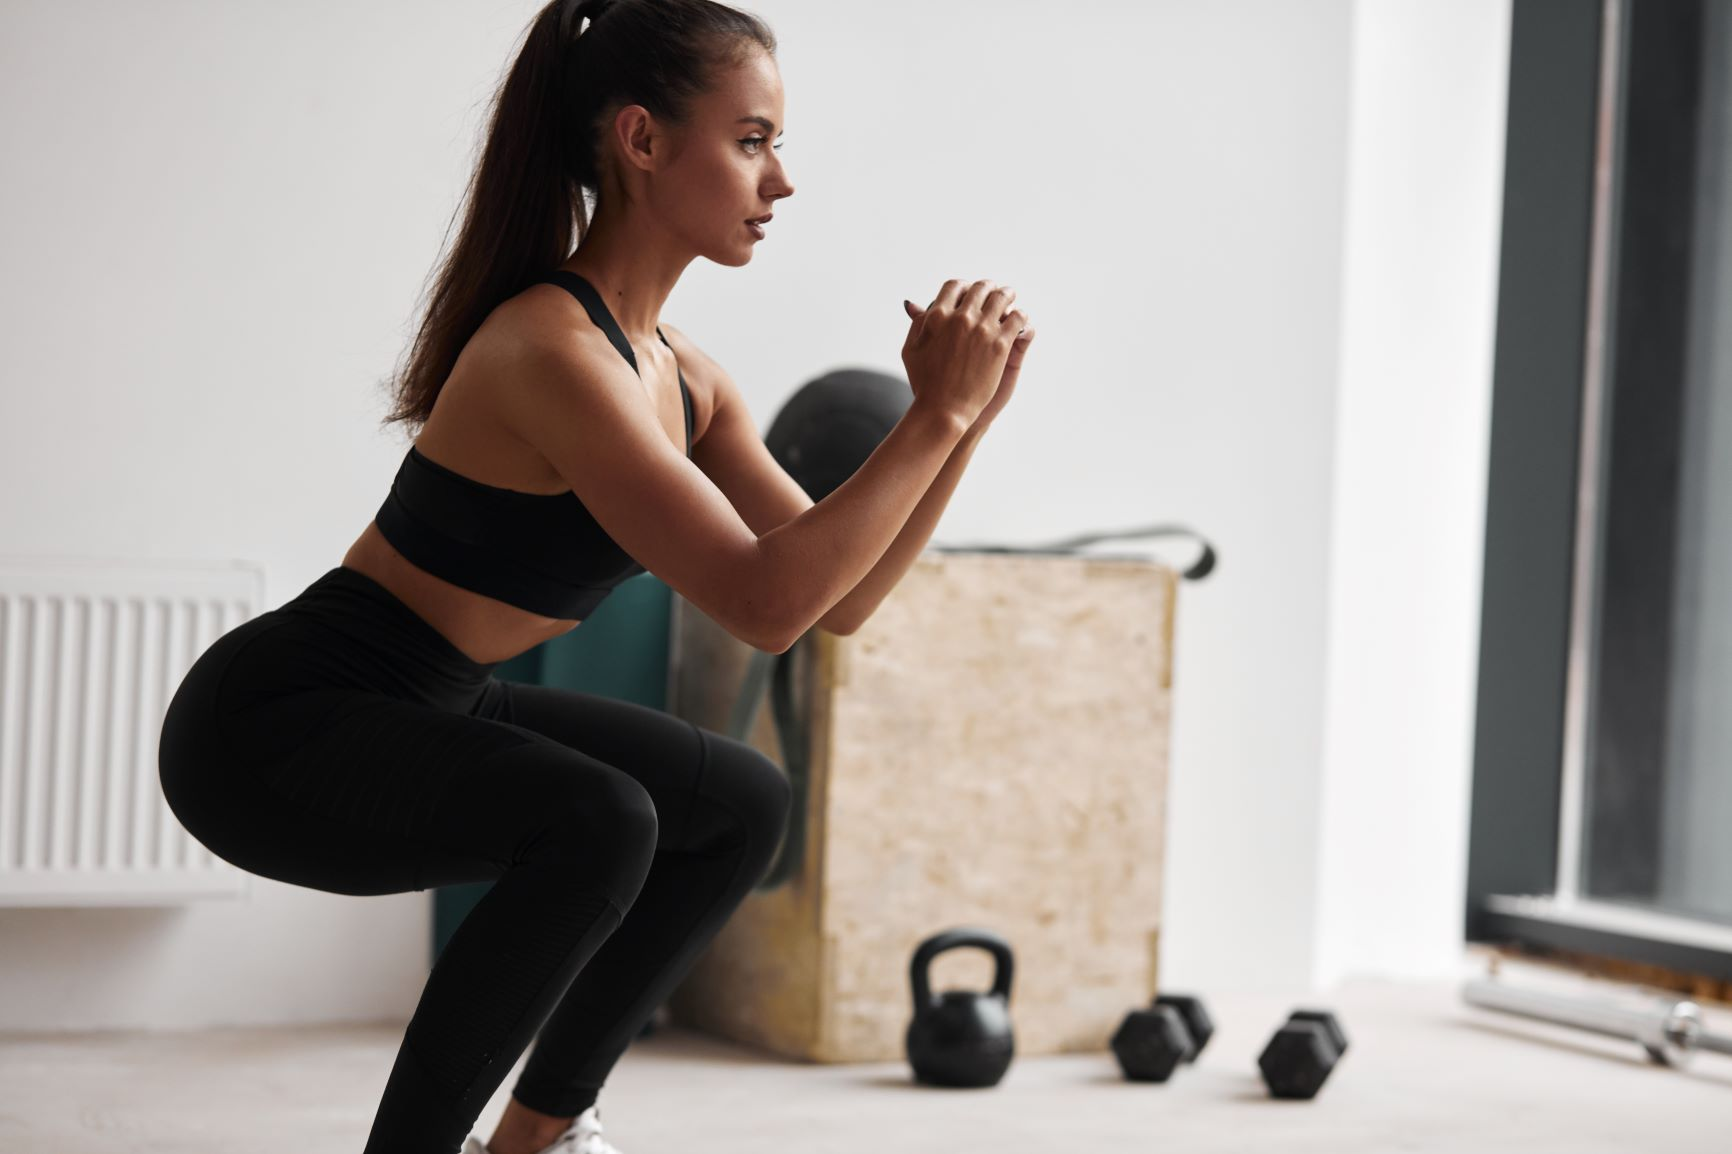 How to Avoid Exercise Injury Over 40, Dark haired woman in black in squat